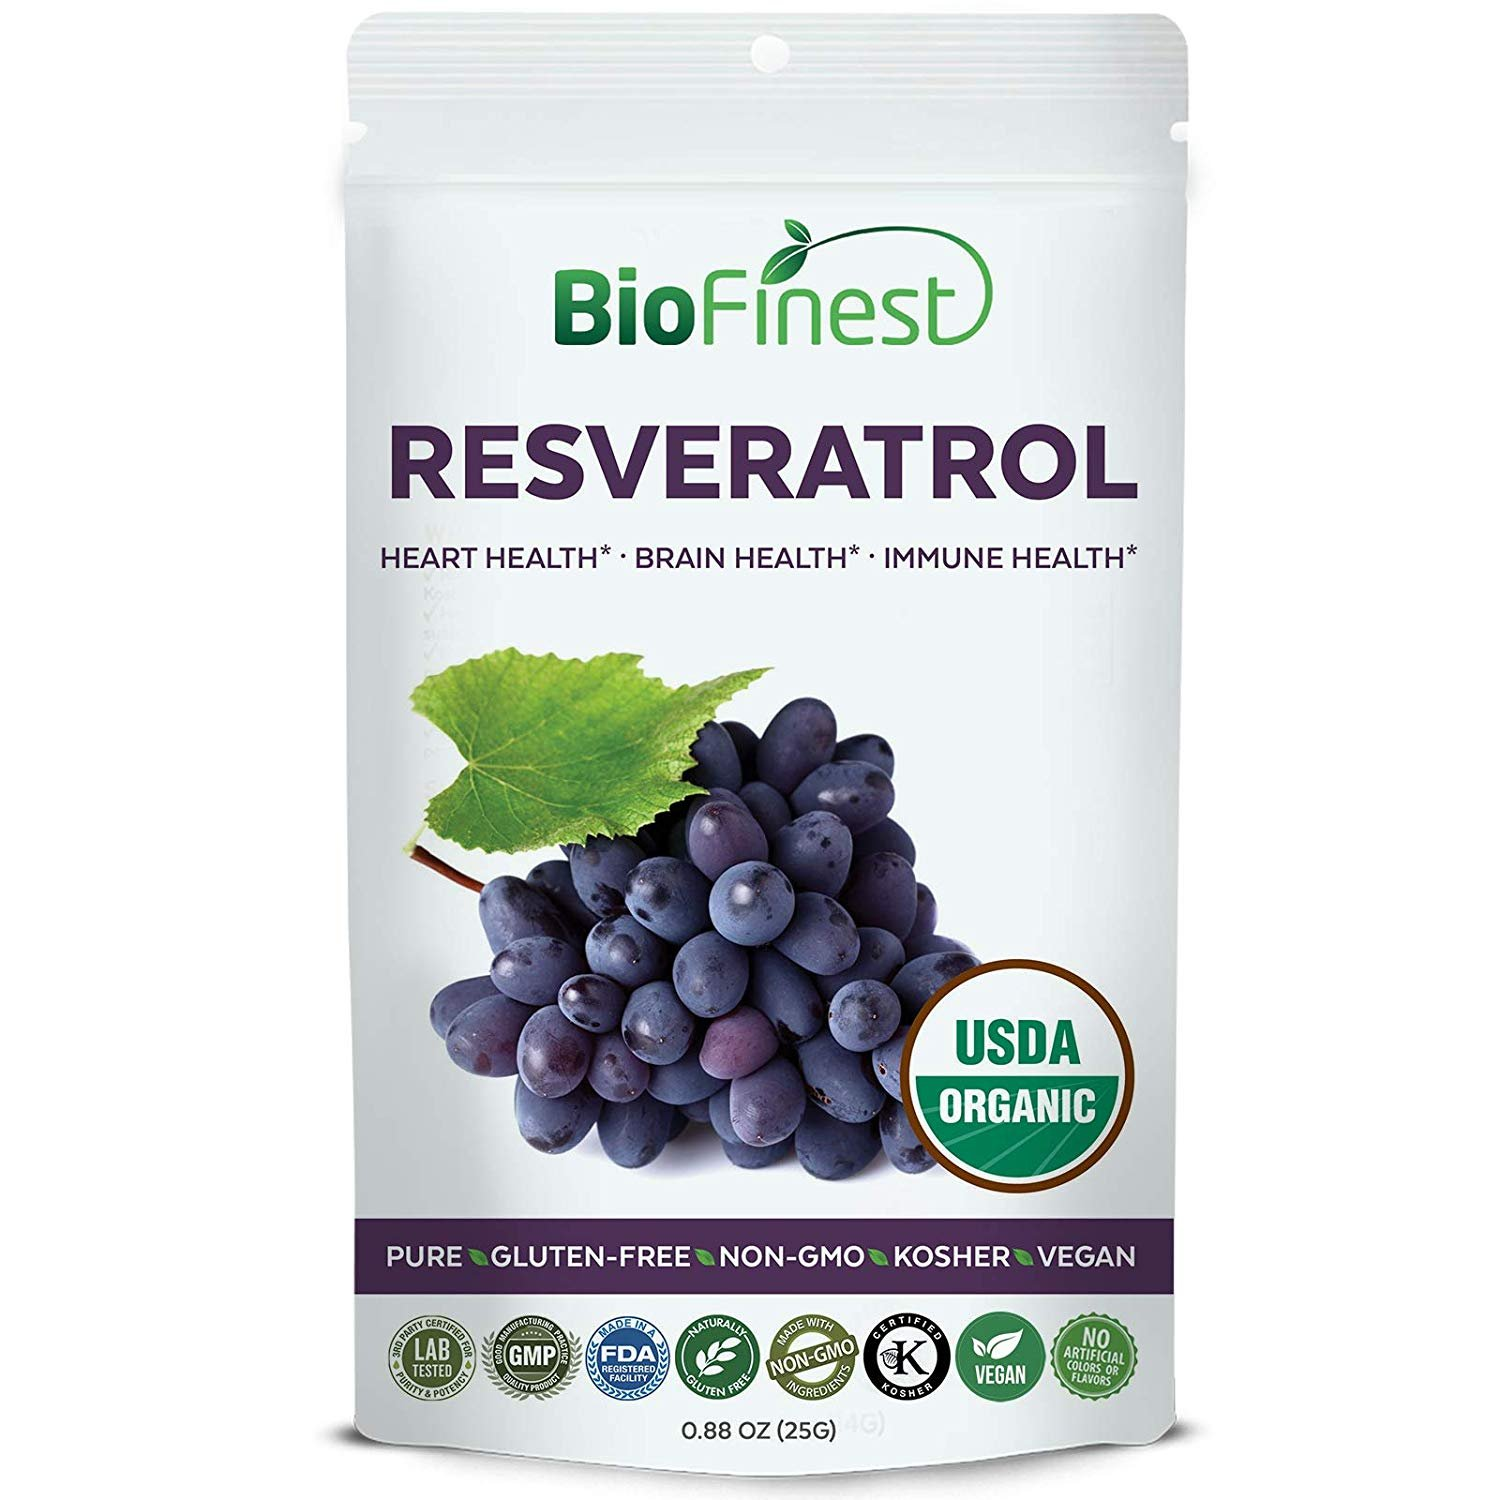 Biofinest Resveratrol Powder 250mg - USDA Certified Organic Red Grapes Pure Gluten-Free Non-GMO Kosher Vegan Friendly - Natural Supplement For Healthy Aging And Skin, Brain Health, Heart Support (25g)